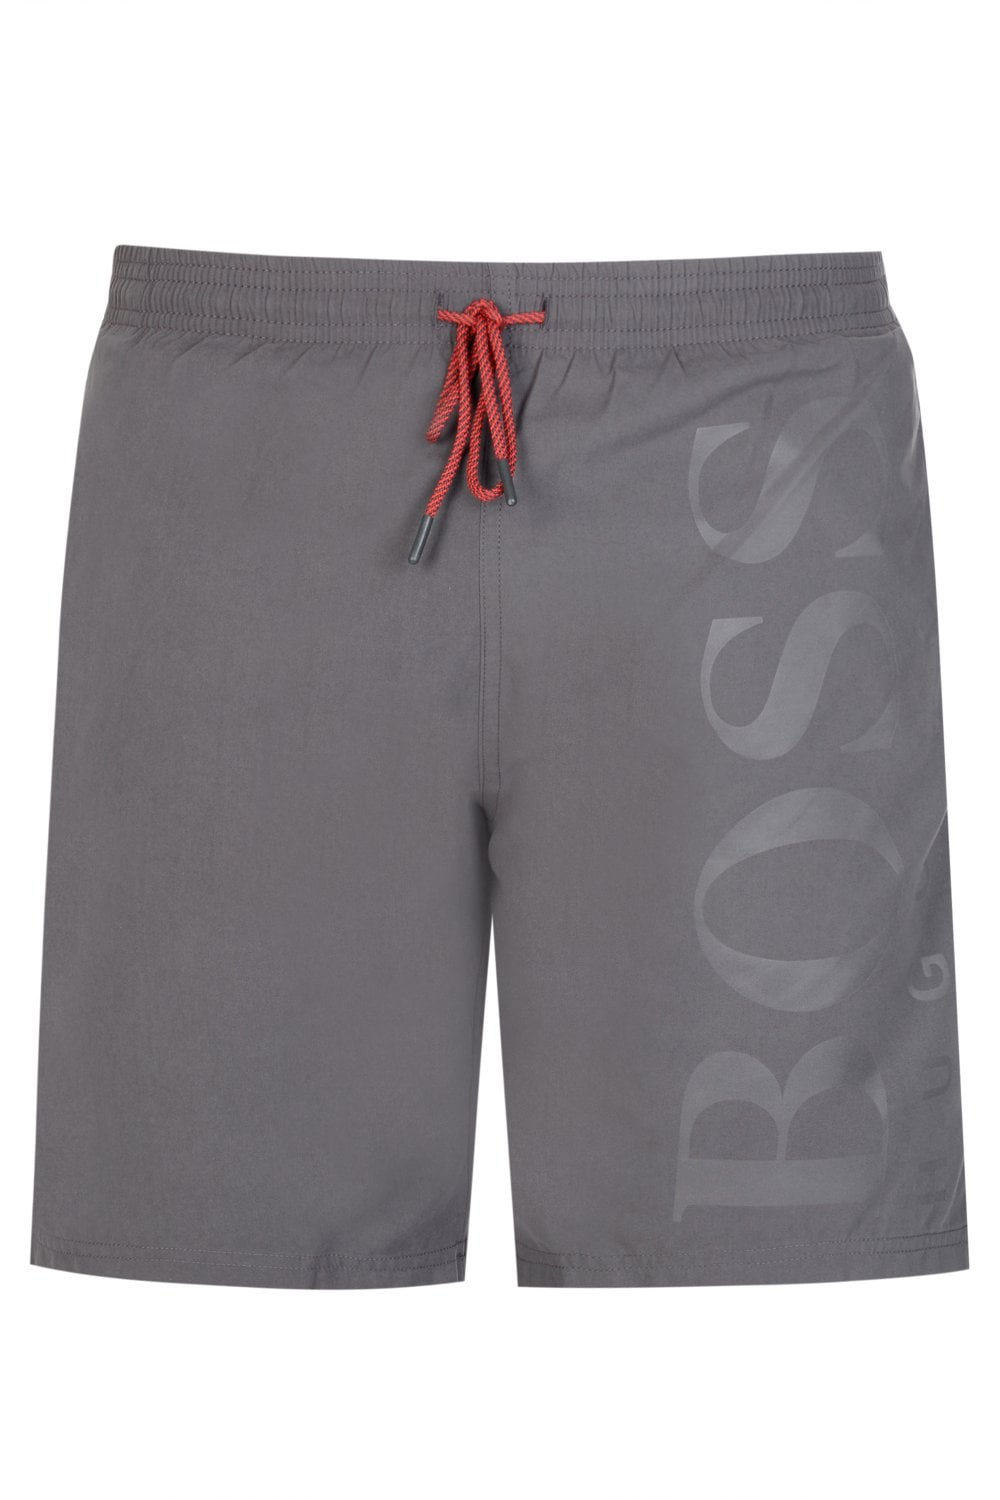 0f08a74714 BOSS Hugo Boss Orca Swim Shorts - Swimwear from Circle Fashion UK